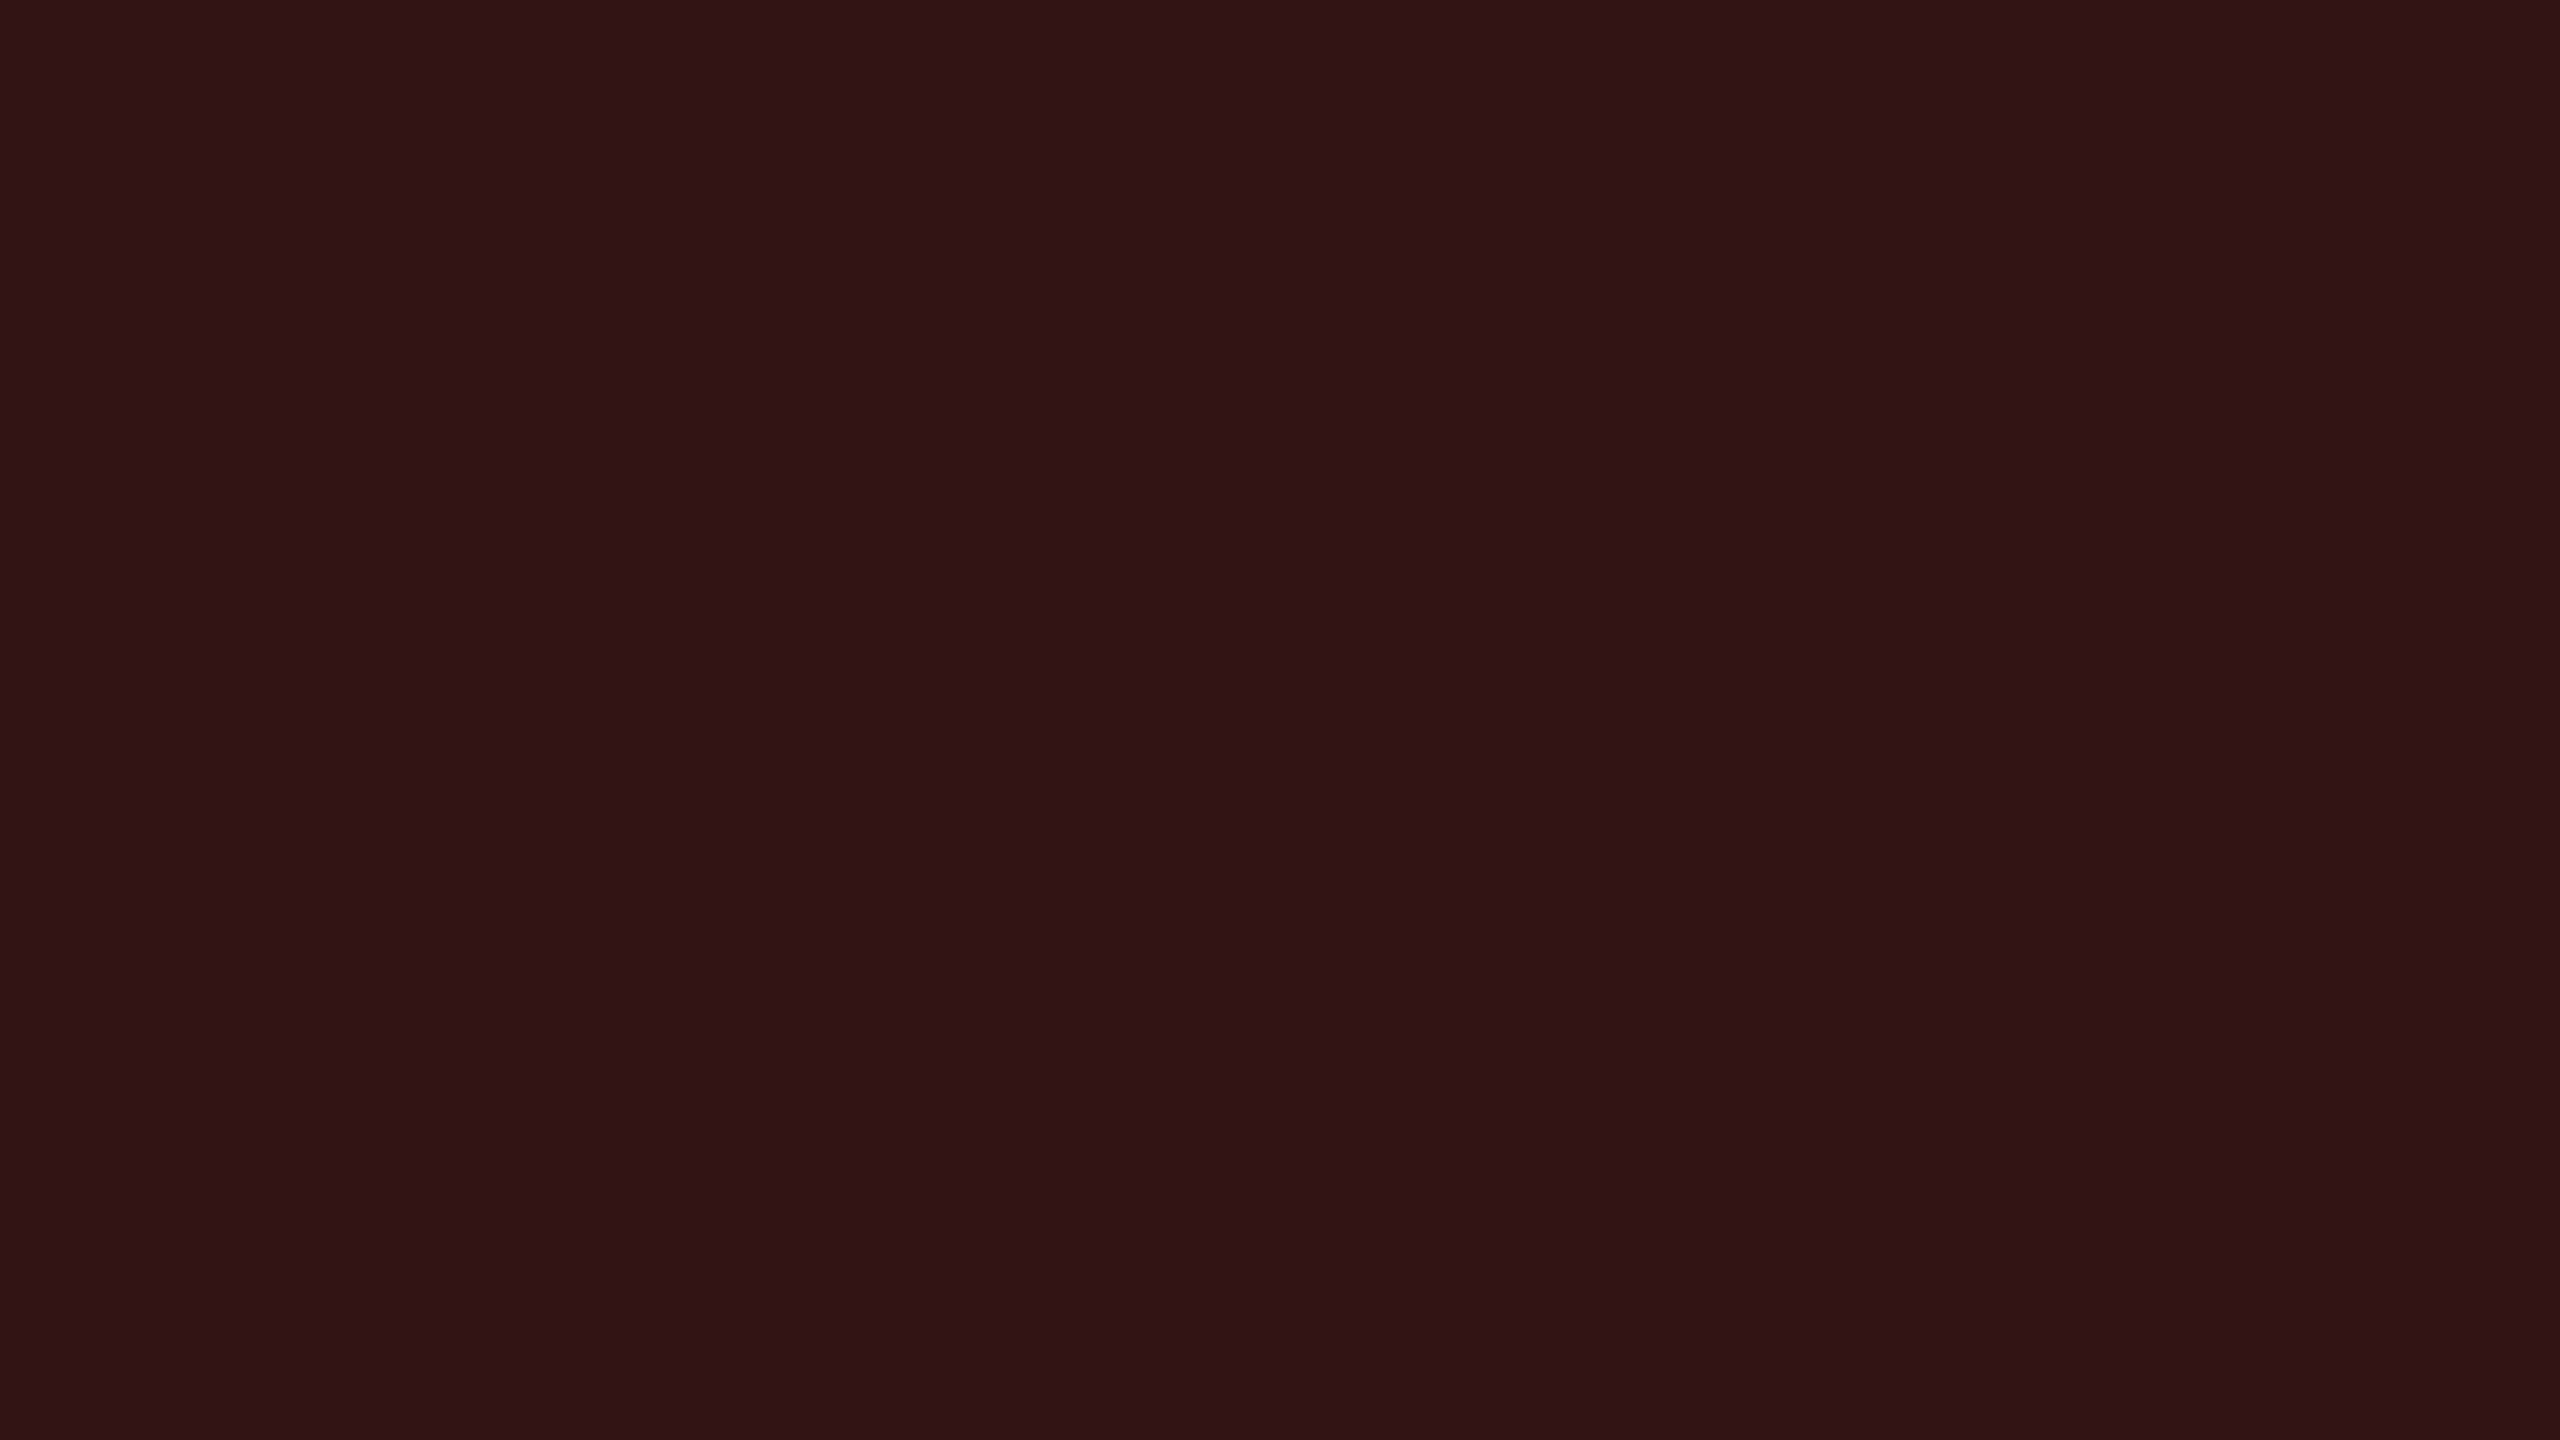 2560x1440 Seal Brown Solid Color Background